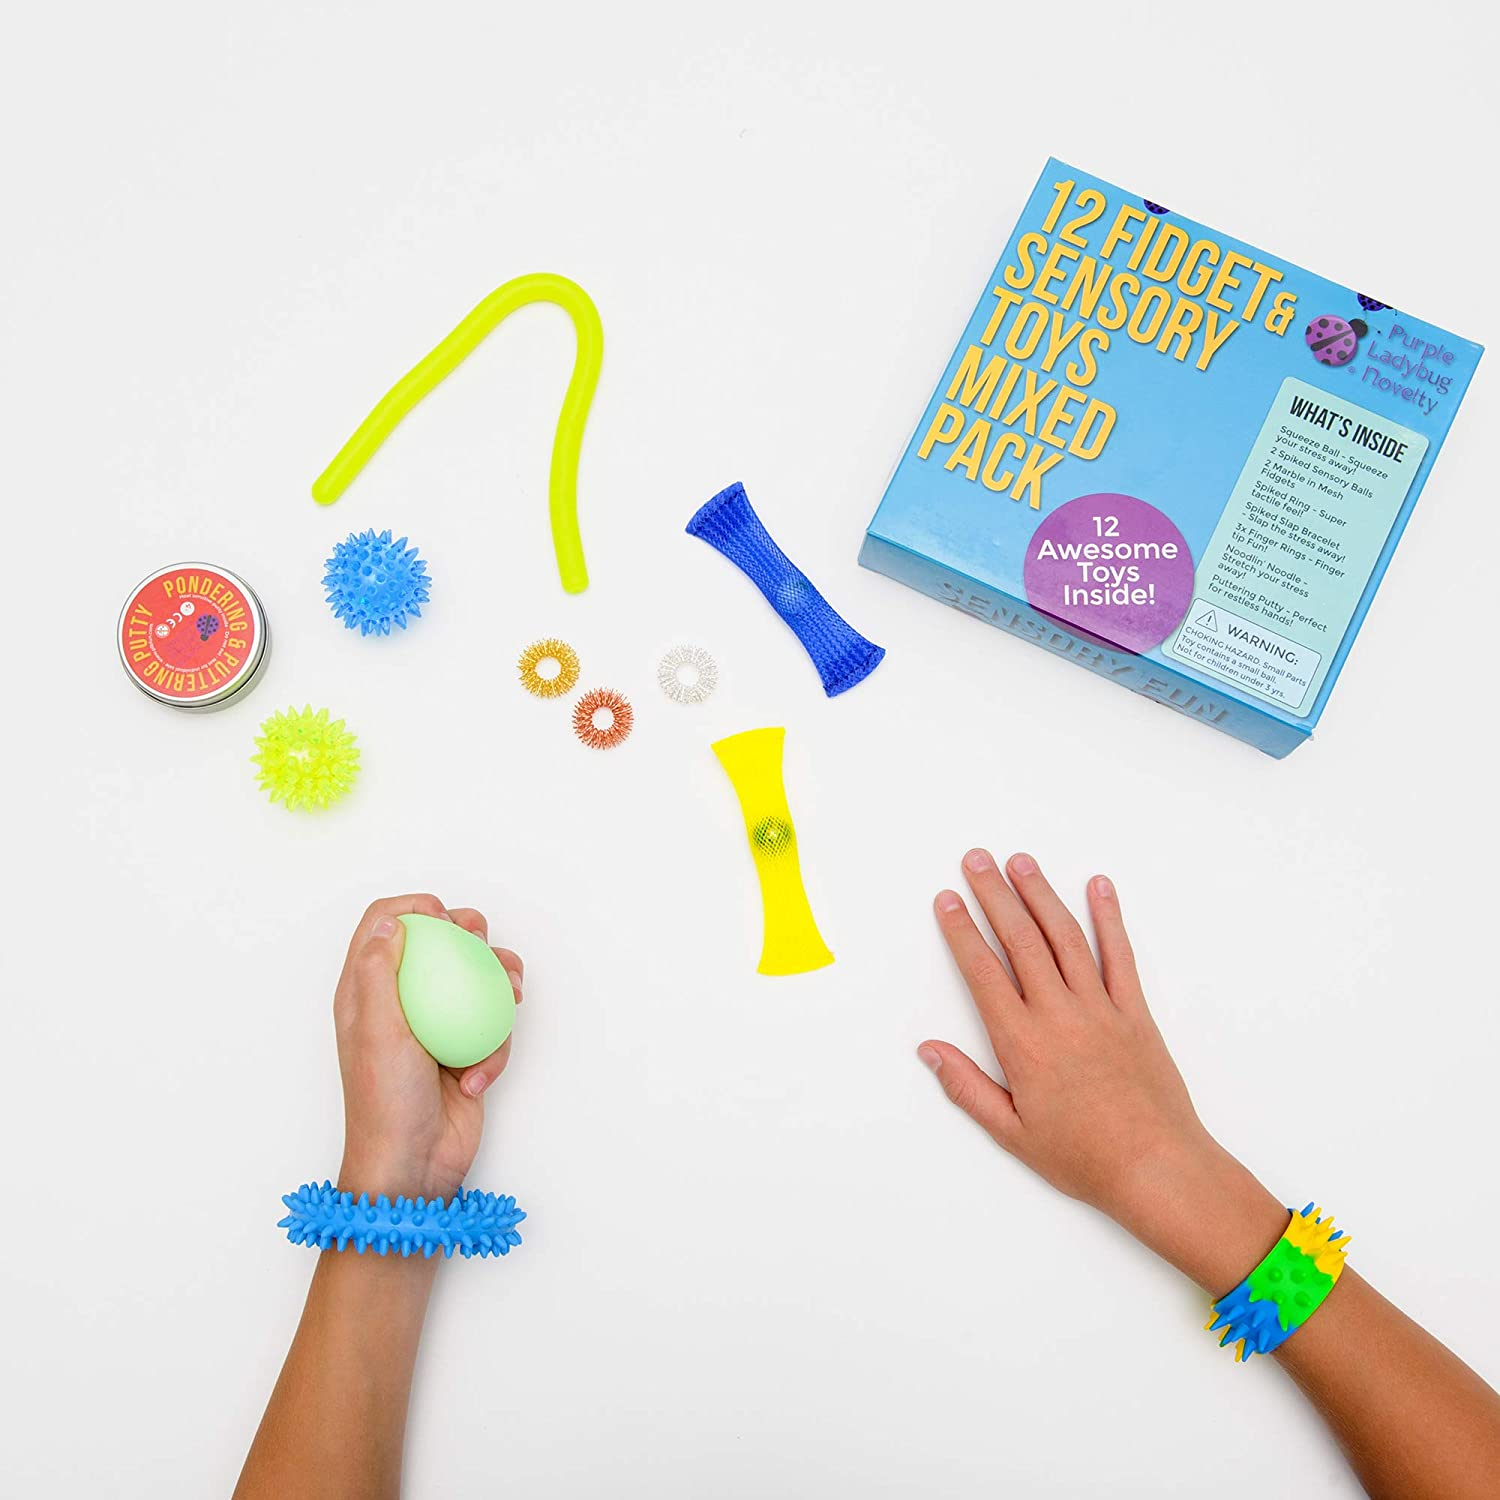 Teens /& Adults Mixed Fidget Toys for Anxiety /& Stress Relief Cool Childrens Toys for Travel Fun Fiddle Toys /& Great Gifts for Girls /& Boys of Any Age Package of 12 Assorted Sensory Toys for Kids